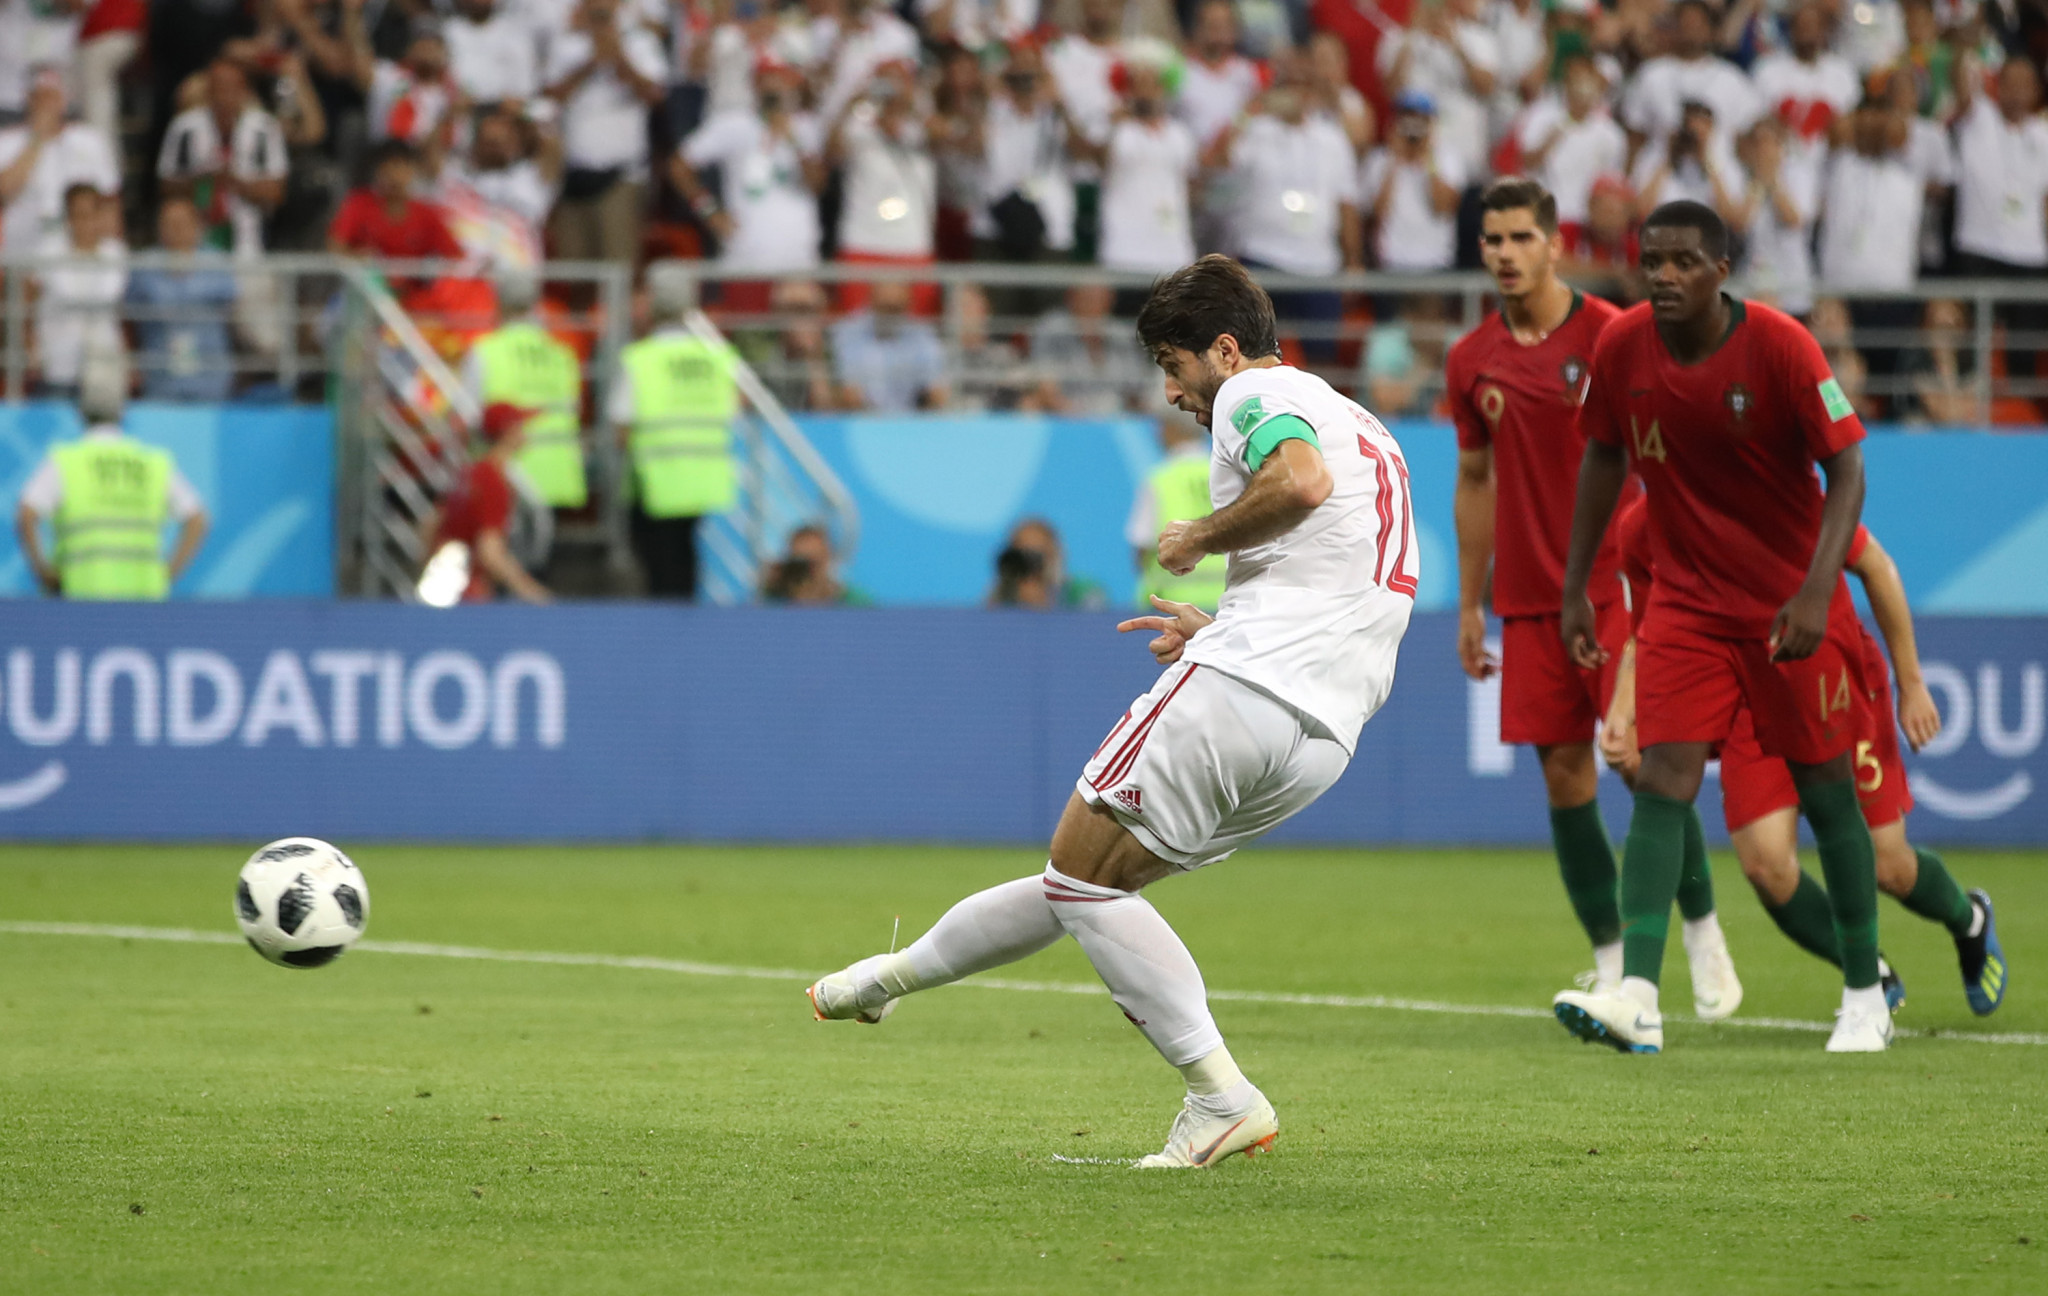 Karim Ansarifard's spot-kick three minutes into stoppage time earned Iran a point and condemned Portugal to second place in a controversial end to Group B ©Getty Images